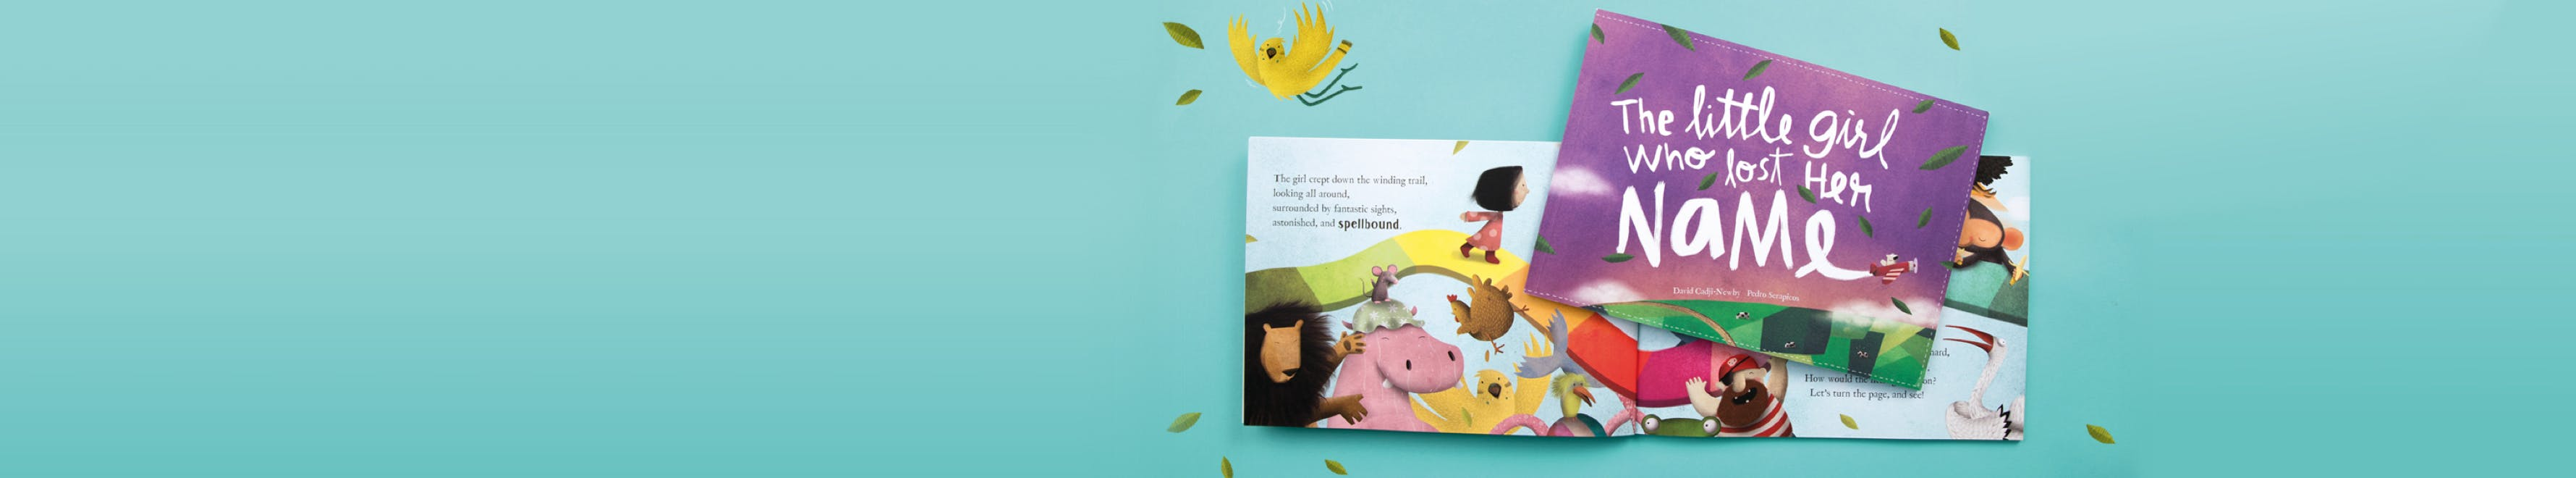 Picture of The Little Girl Who Lost Her Name book cover and interior spread